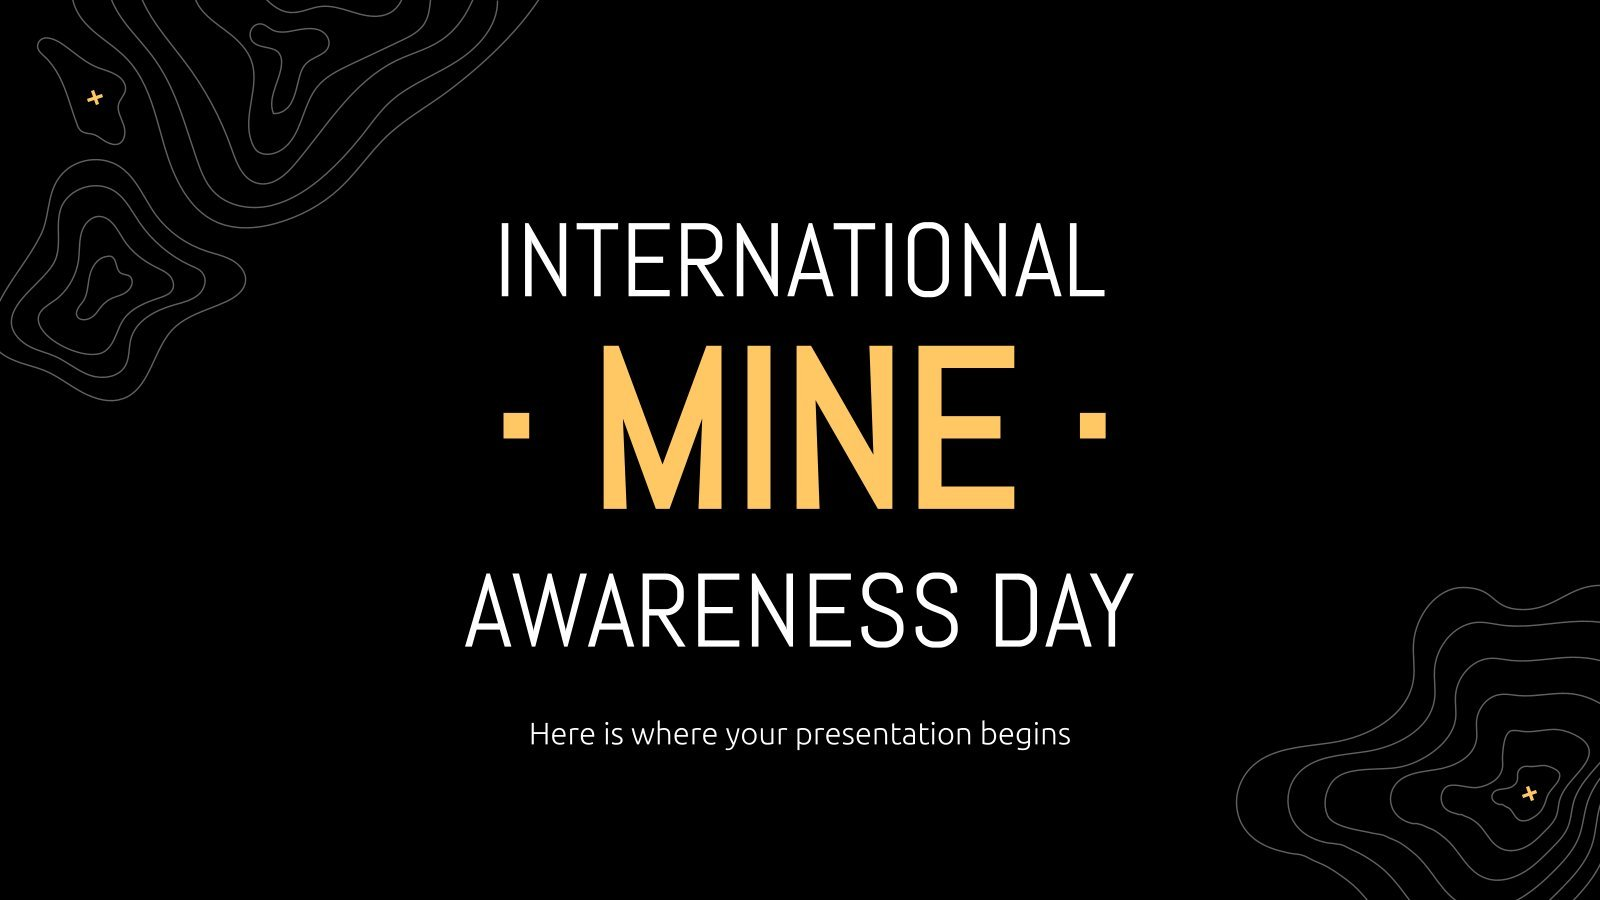 International Mine Awareness Day presentation template